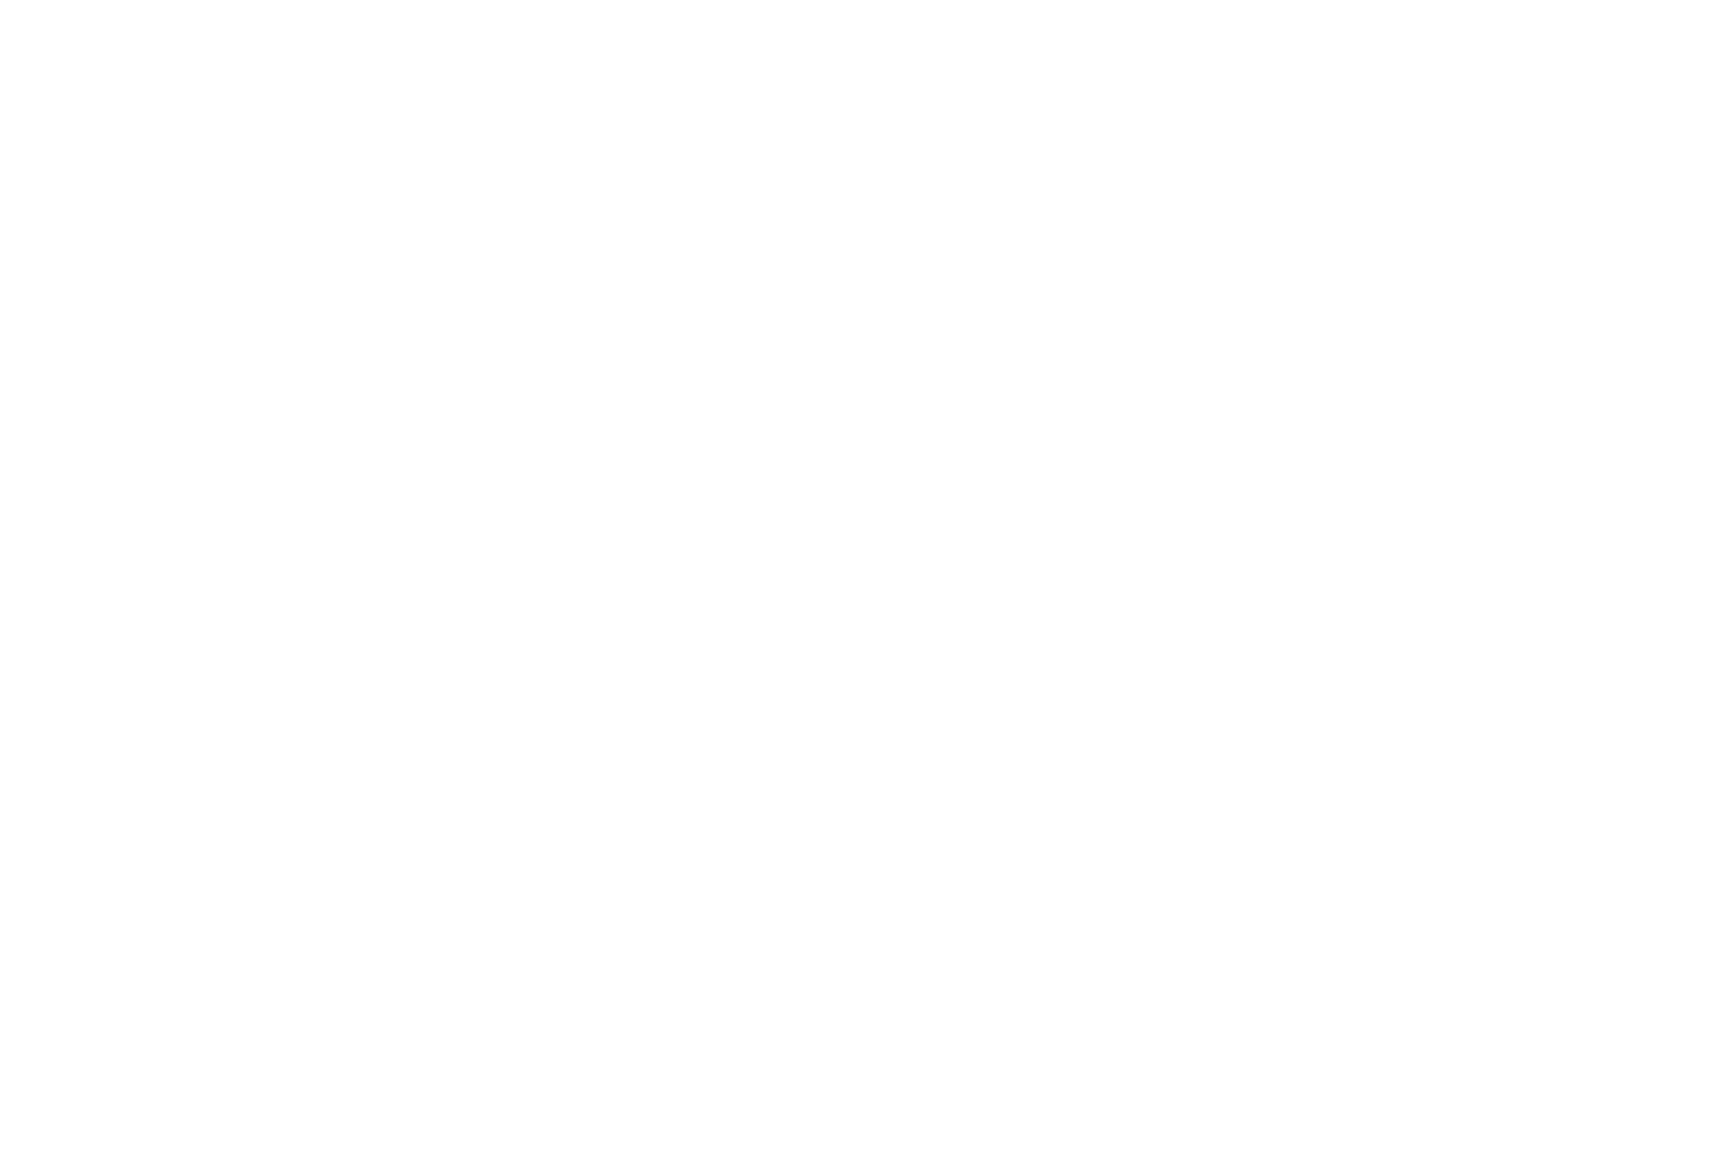 OFFICIAL SELECTION - Muestra Internacional de Cine Astronmico - 2018.png